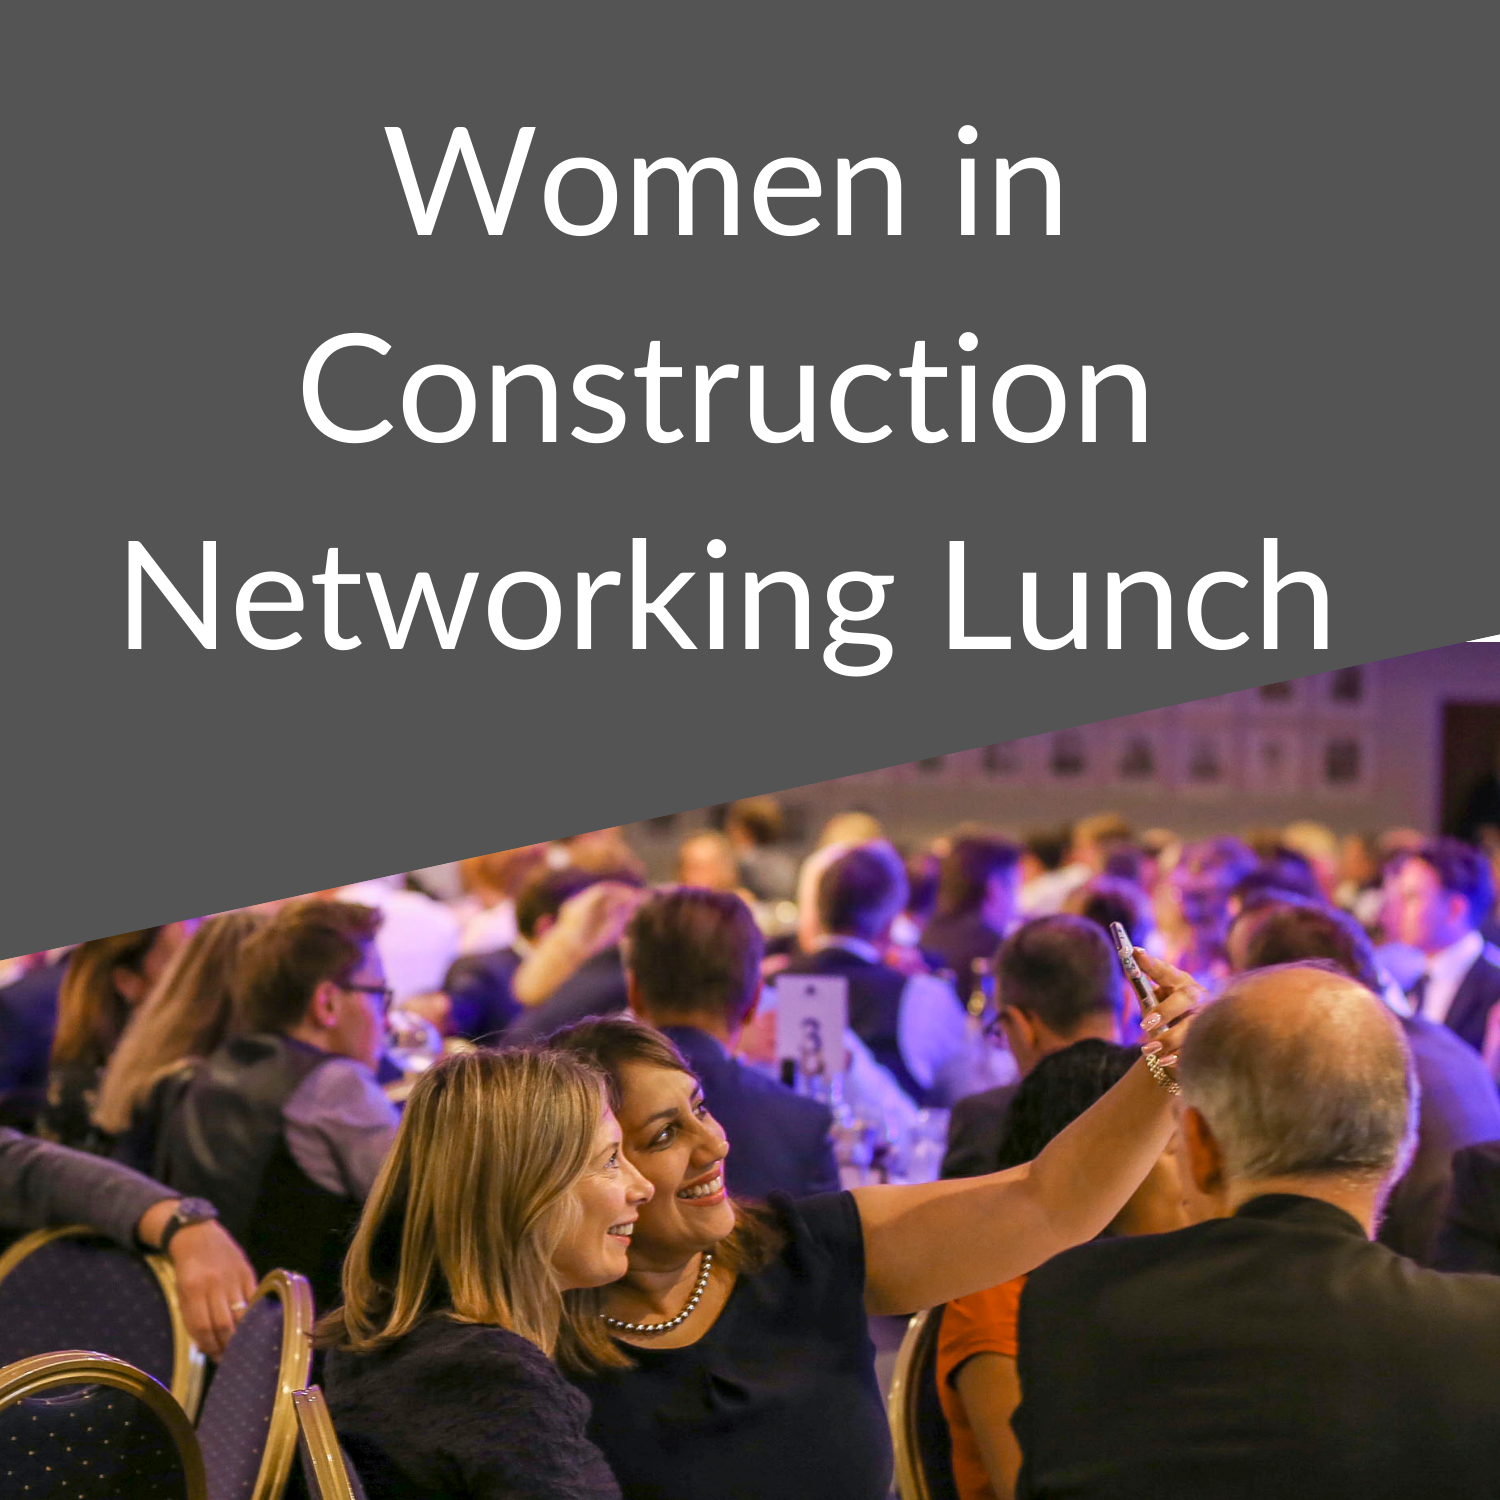 Women in Construction Networking Lunch